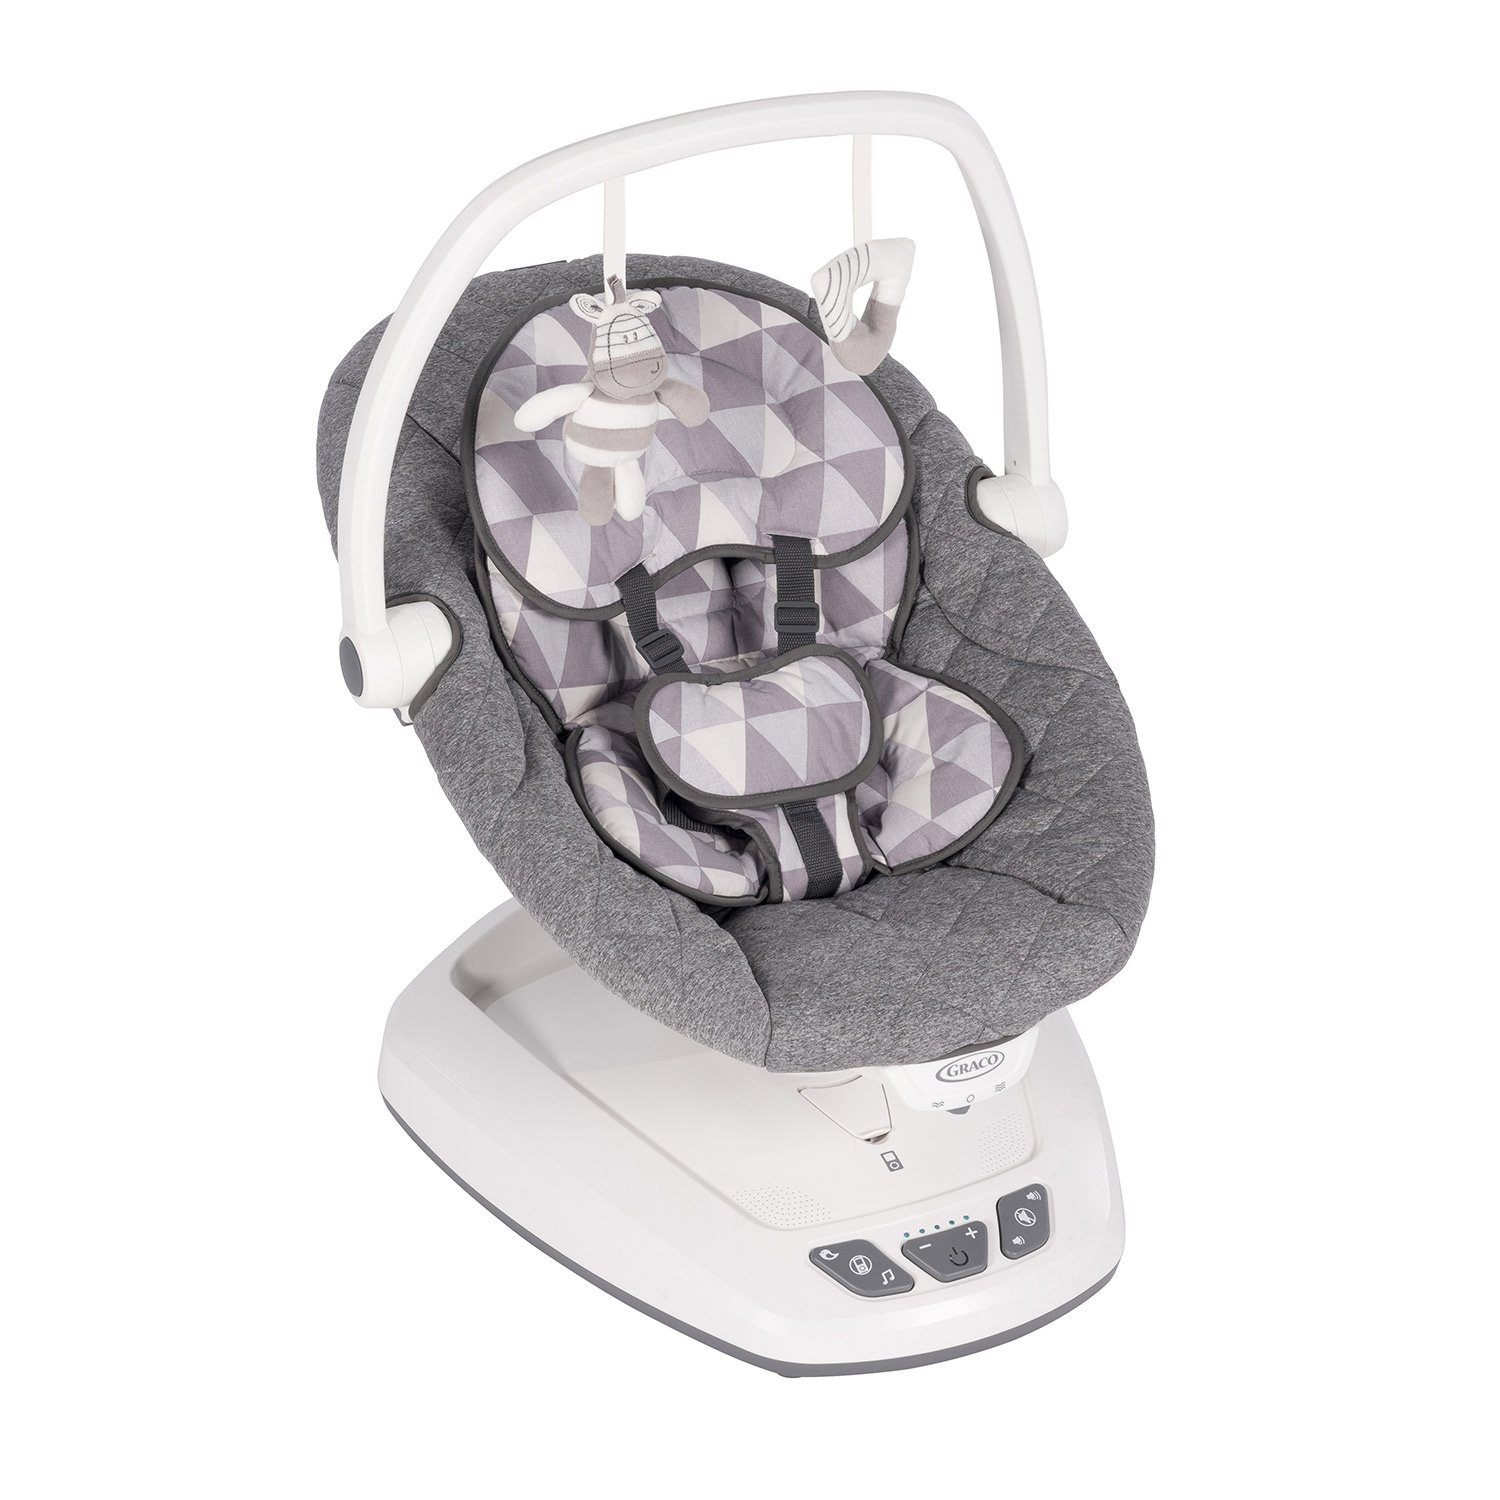 Graco Move with Me Infant Soother, Watney Newell Rubbermaid 2028785